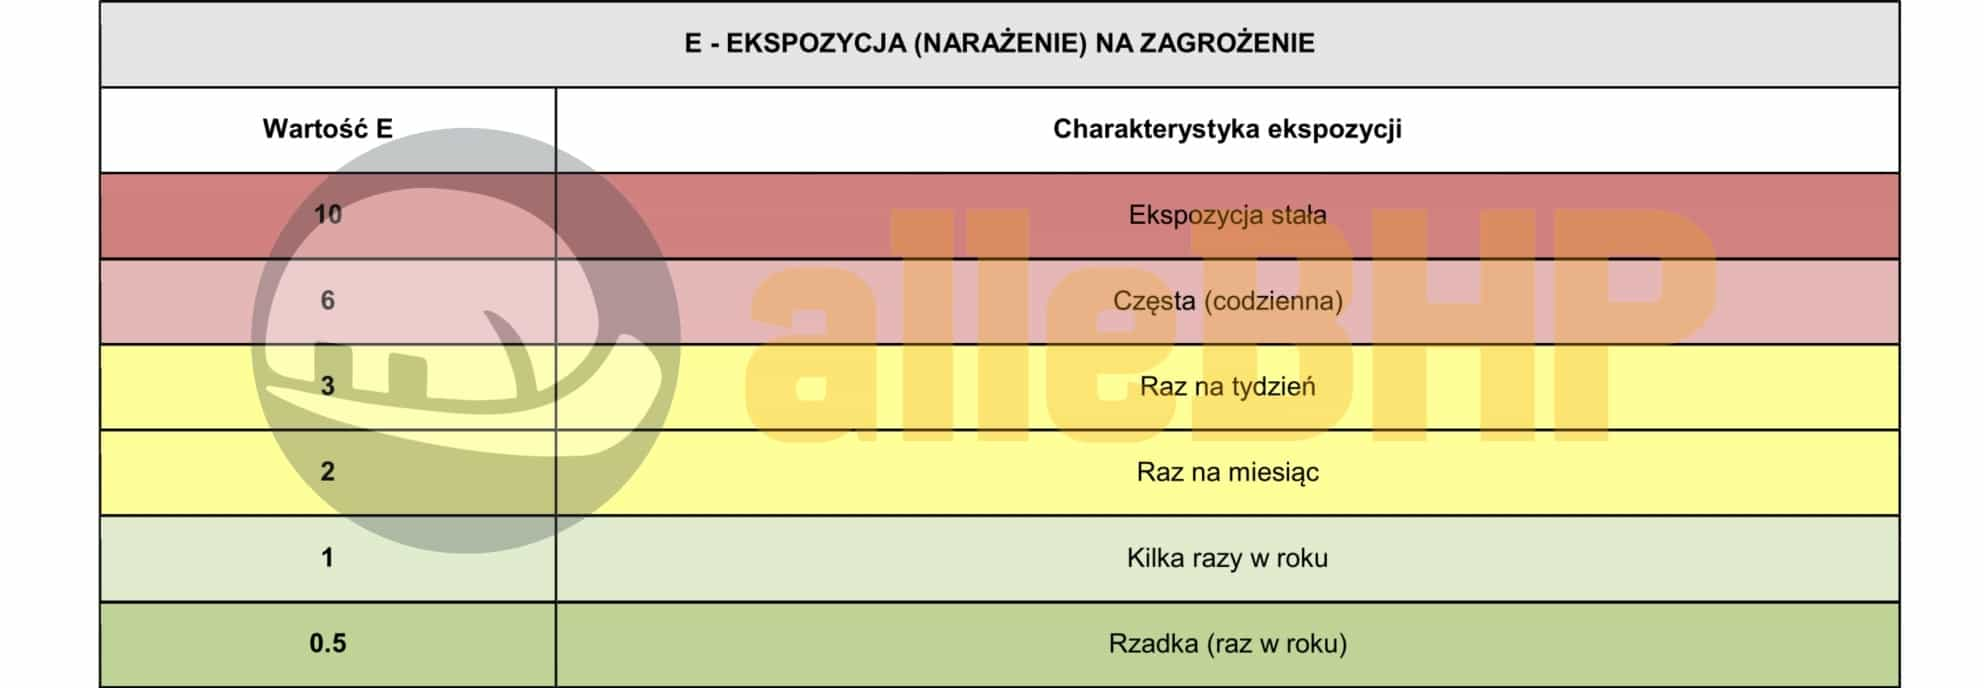 Diagnosta laboratoryjny metodą  RISK SCORE 2